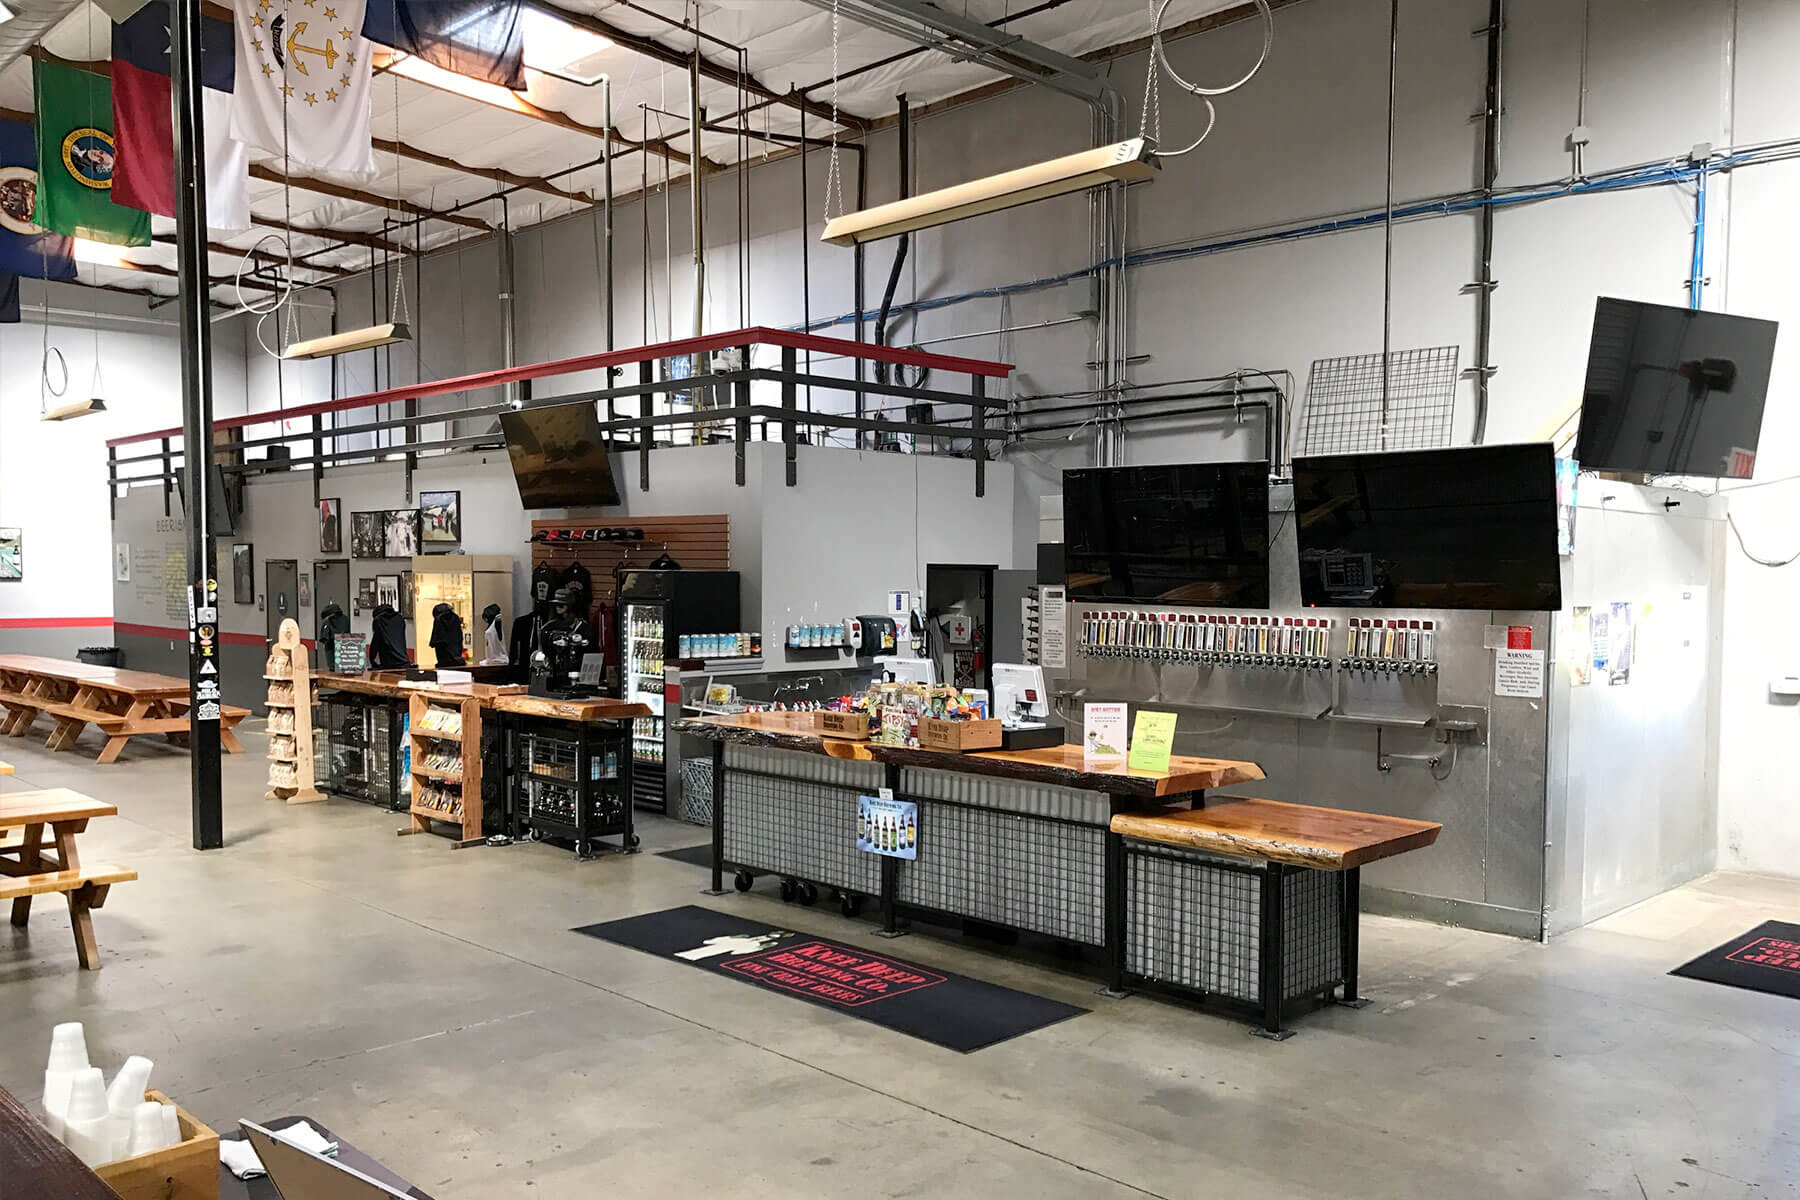 Inside the Knee Deep Brewing Co. taproom in Auburn, California